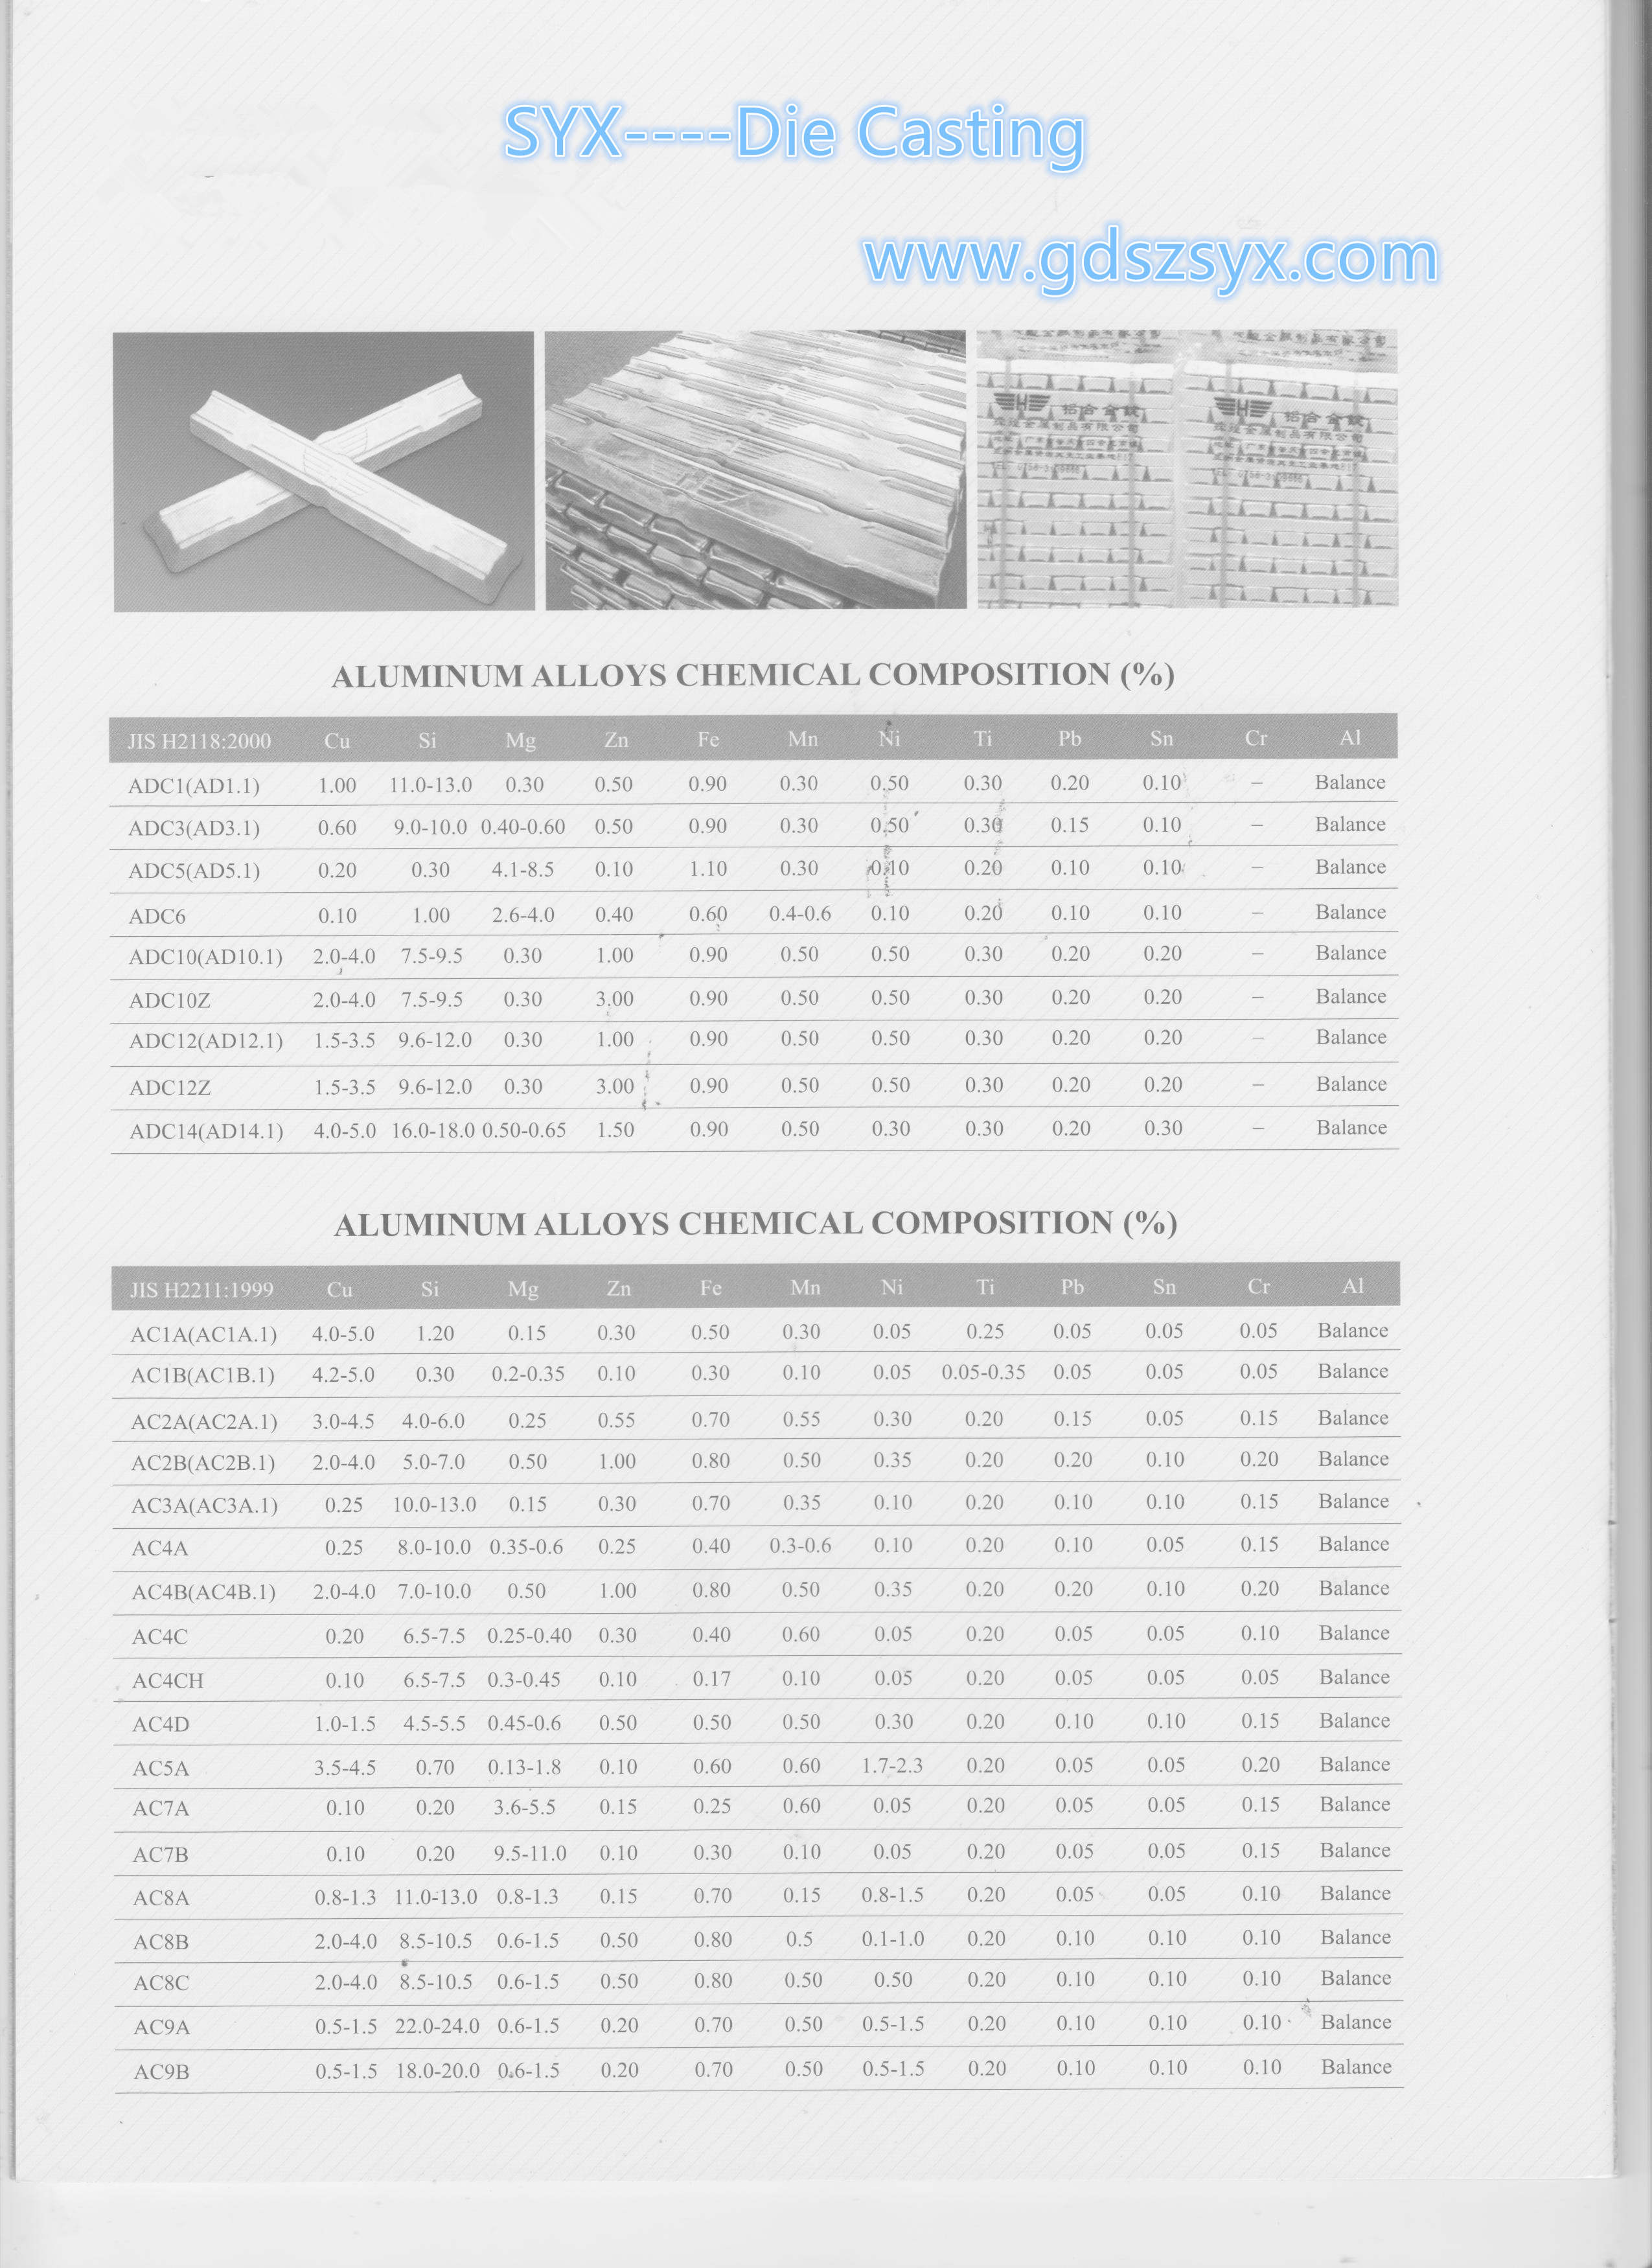 Adc12 Aluminum Alloy Casting Specification